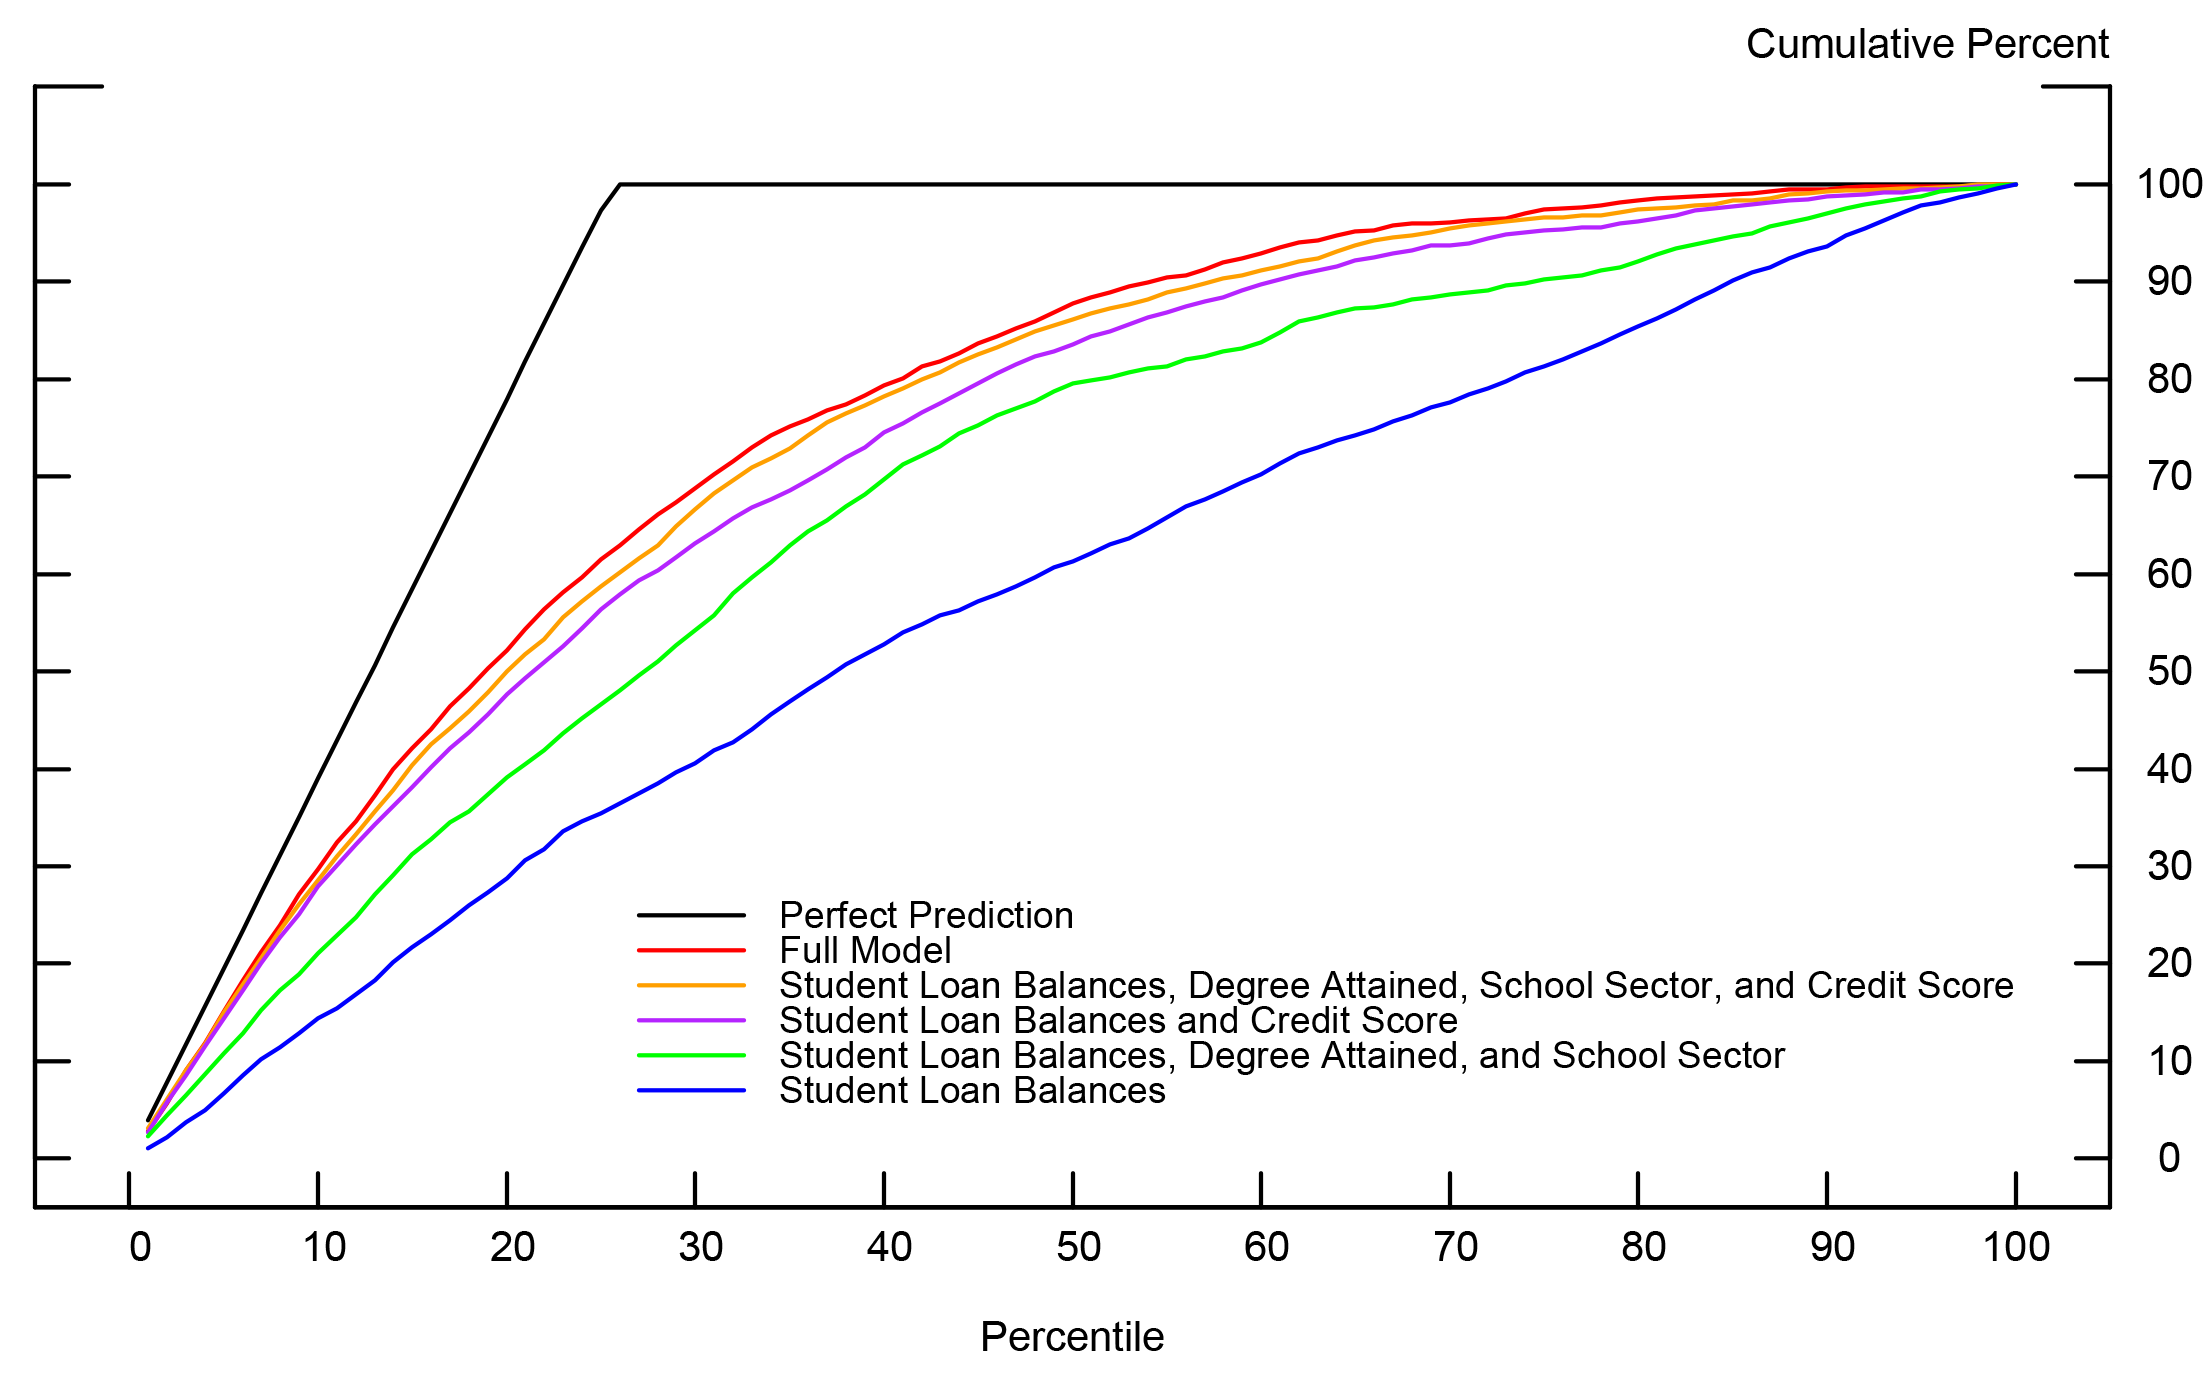 Figure 1: Cumulative Delinquency Curves by Model Specification. See accessible link for data.